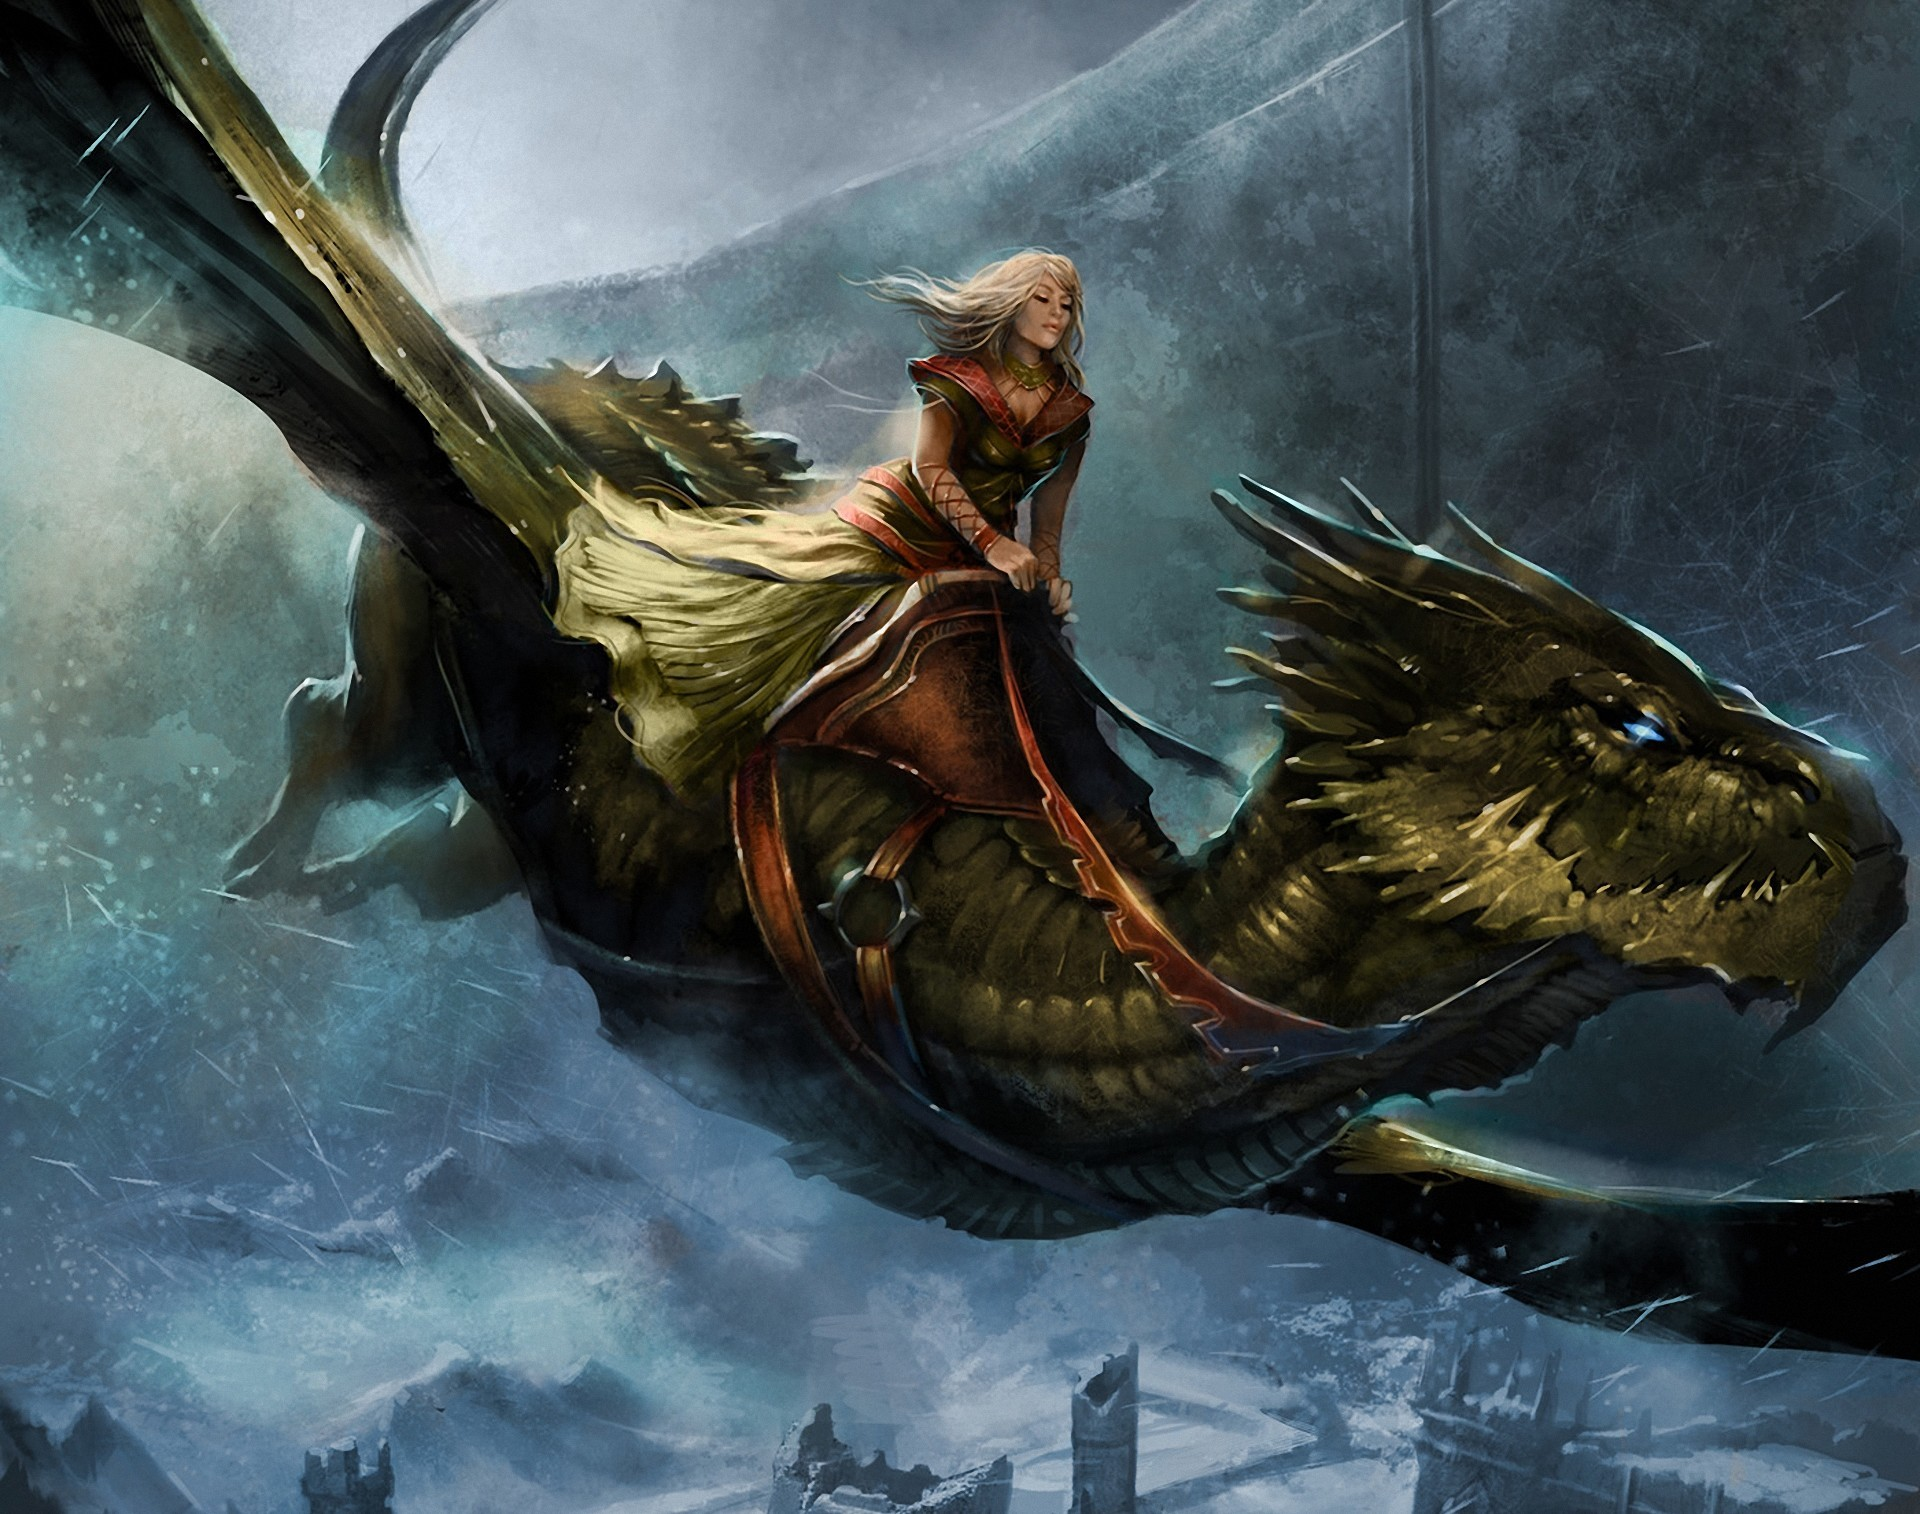 101808 download wallpaper Fantasy, Song Of Ice And Fire Roleplaying, Queen Alysanne, Game Of Thrones, Dragon, Girl, Cold, Flight, City screensavers and pictures for free